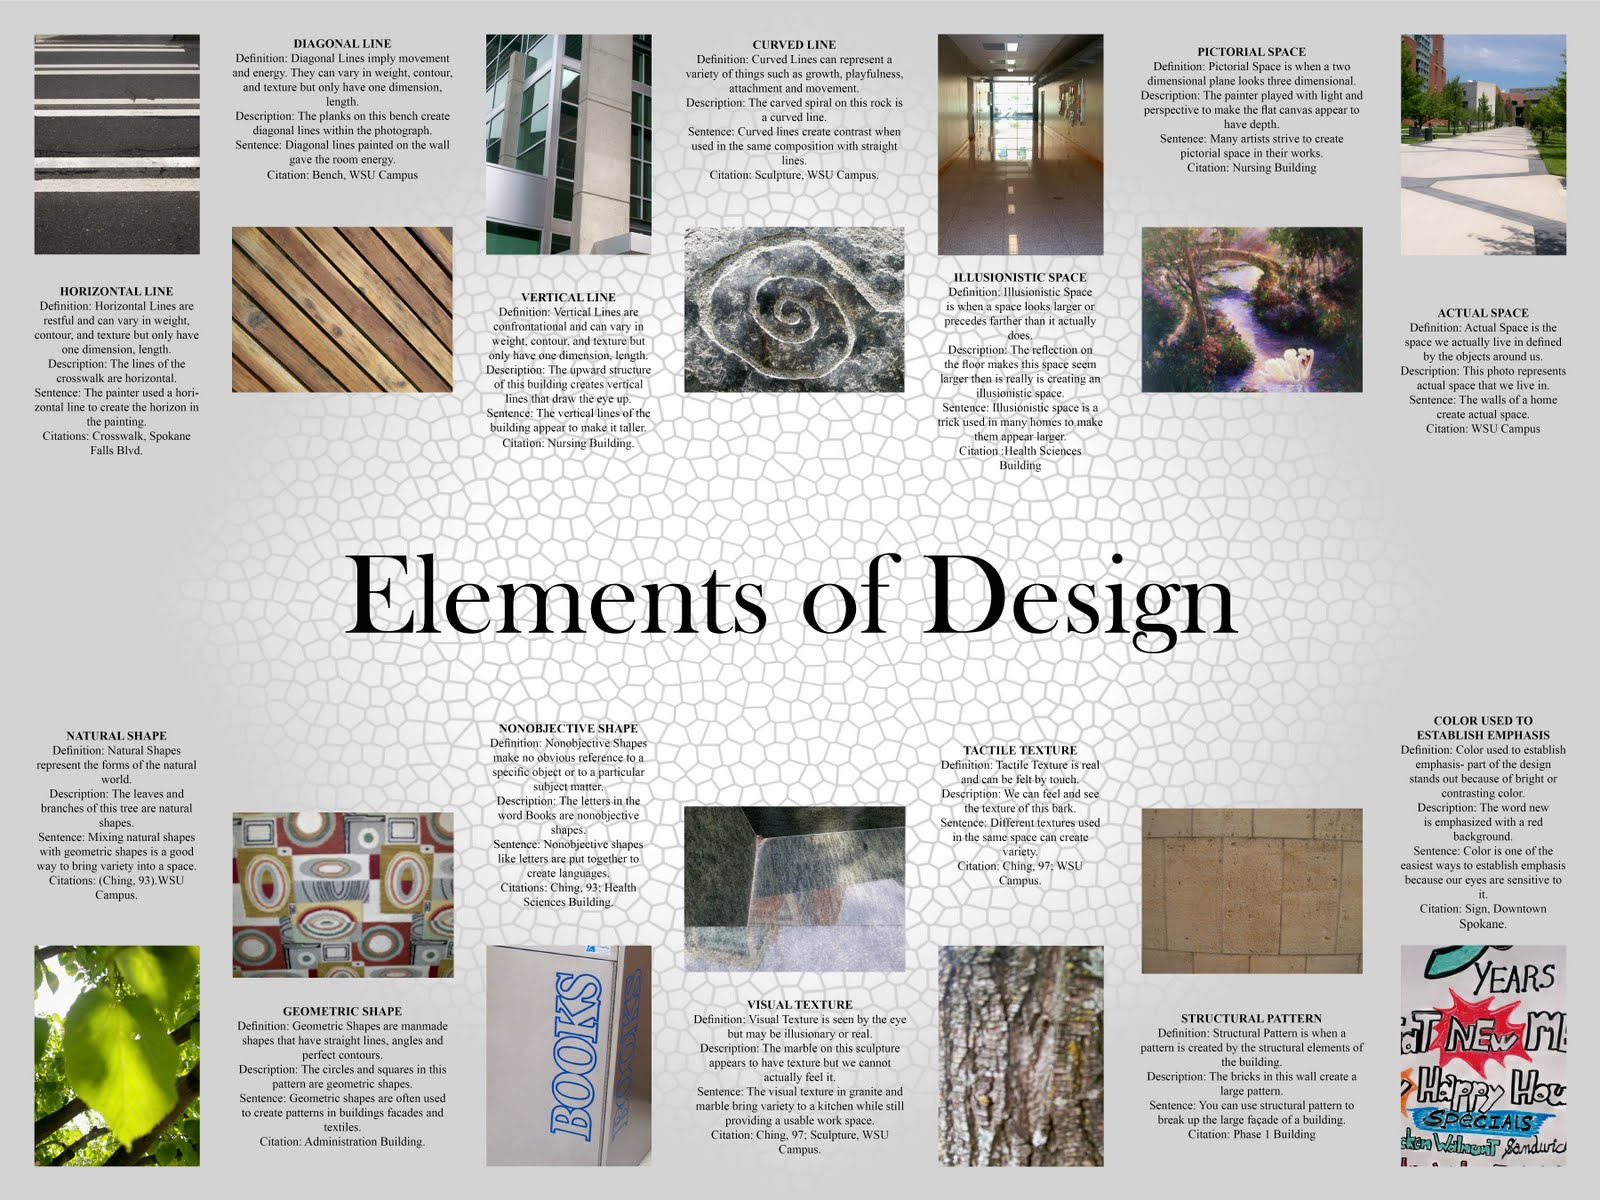 7 Elements And Principles Of Design : Shannon stewart elements and principles of design